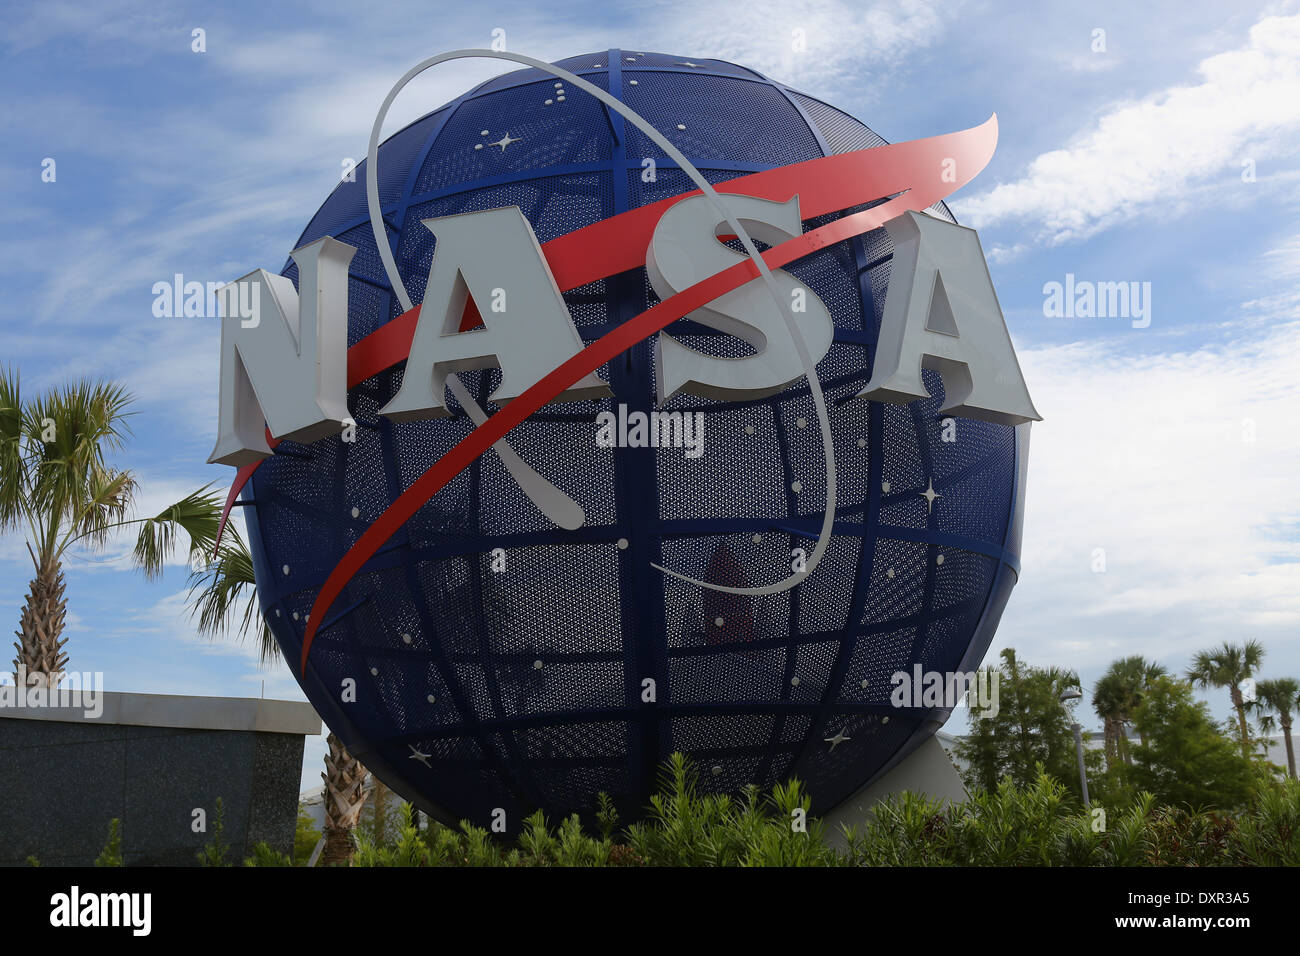 Nasa Logo Stock Photos  Nasa Logo Stock Images Alamy - Nasa museums in usa